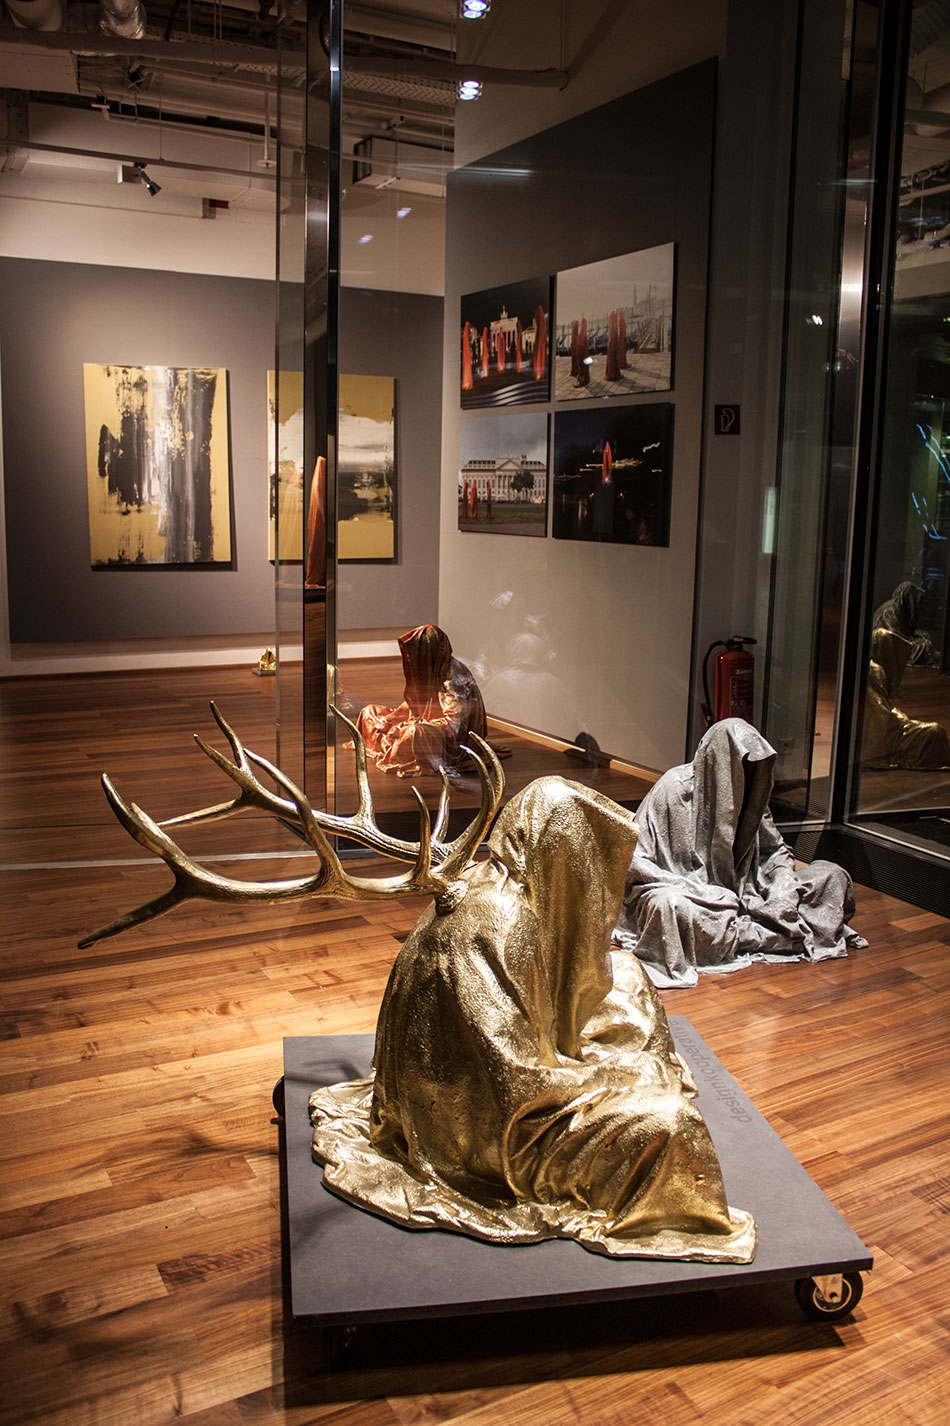 stilwerk-wien-designtower-vienna-show-guardians-of-time-waechter-der-zeit-manfred-kielnhofer-modern-contemporary-fine-art-design-sculpture-3d-arts-3938